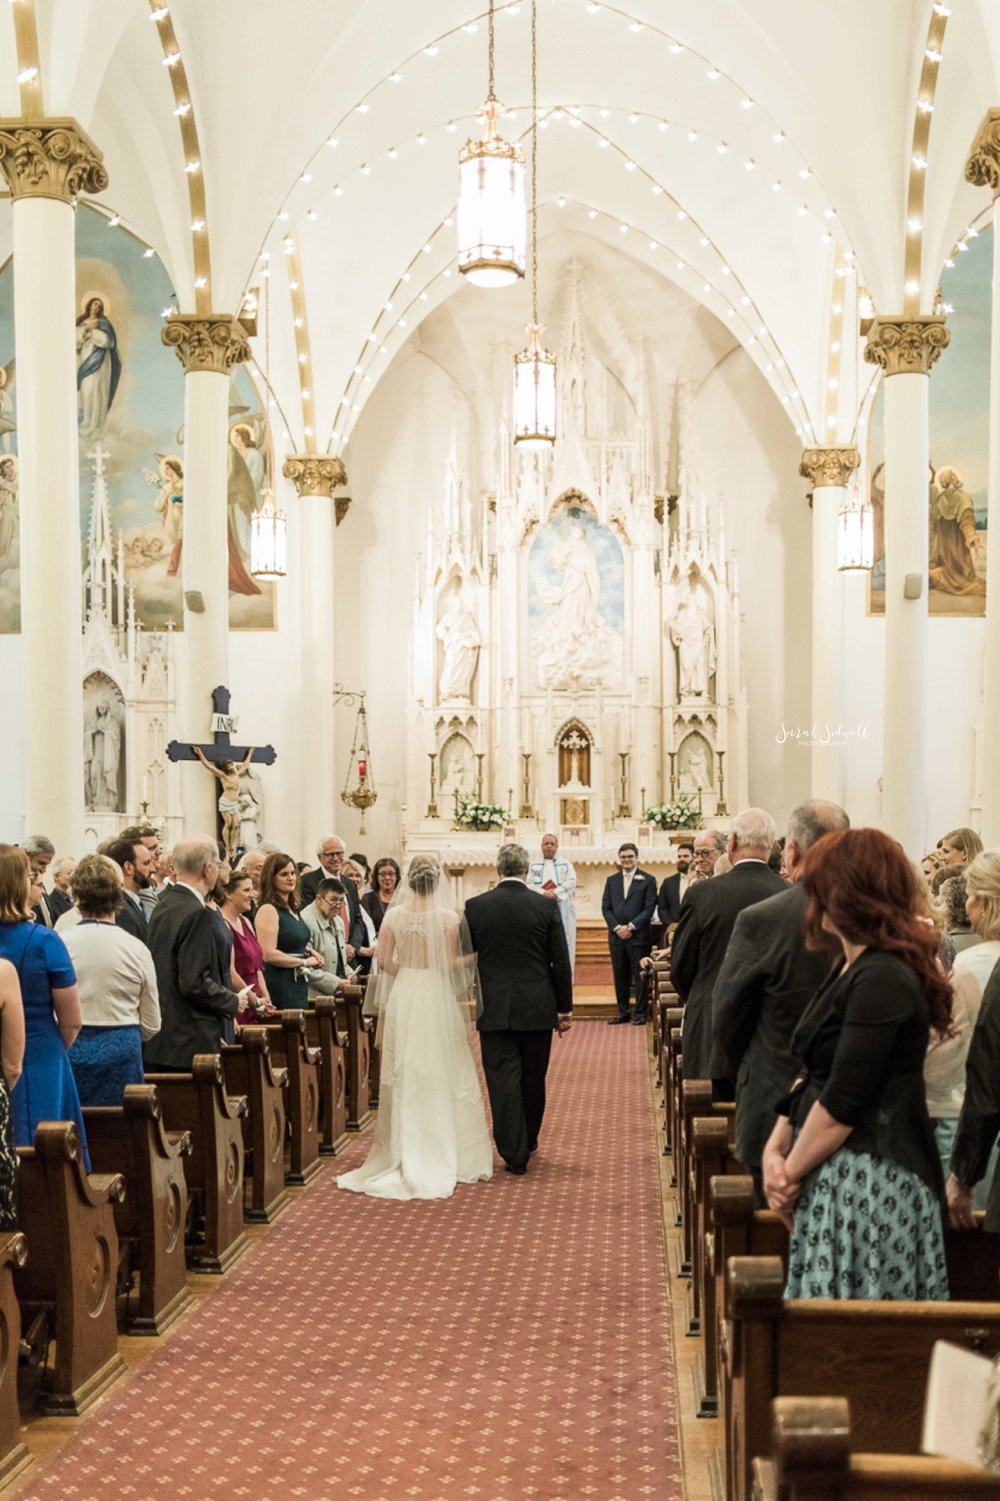 A man walks his daughter down the aisle.